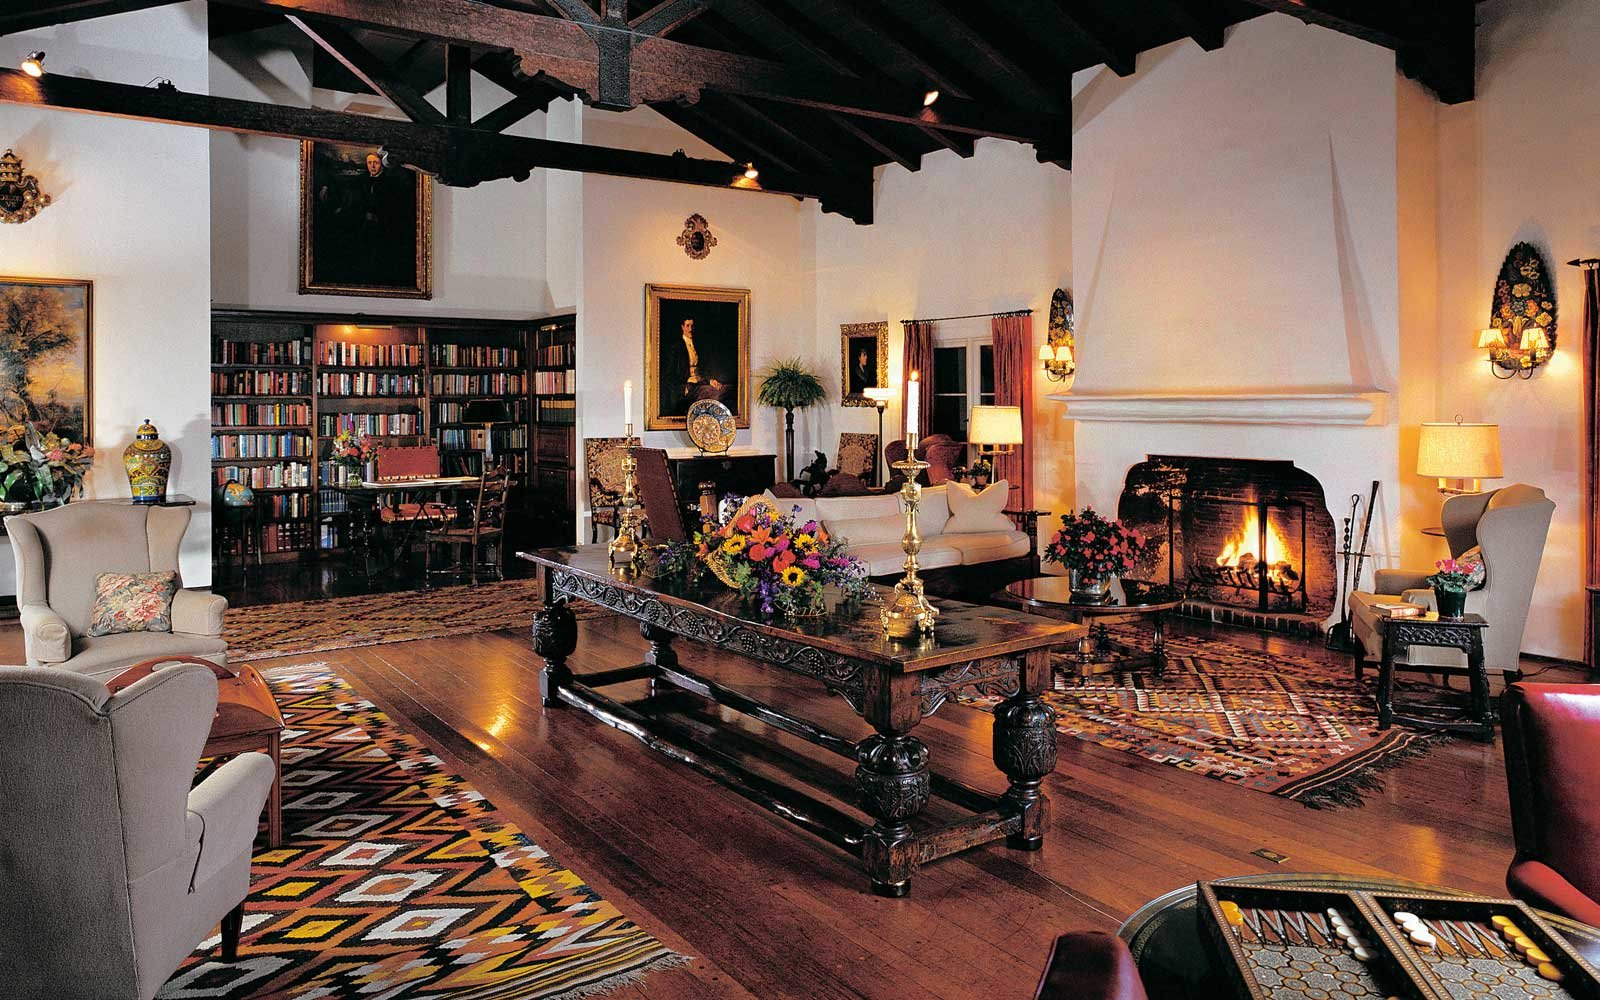 The Best Little Hotel Library in Tucson